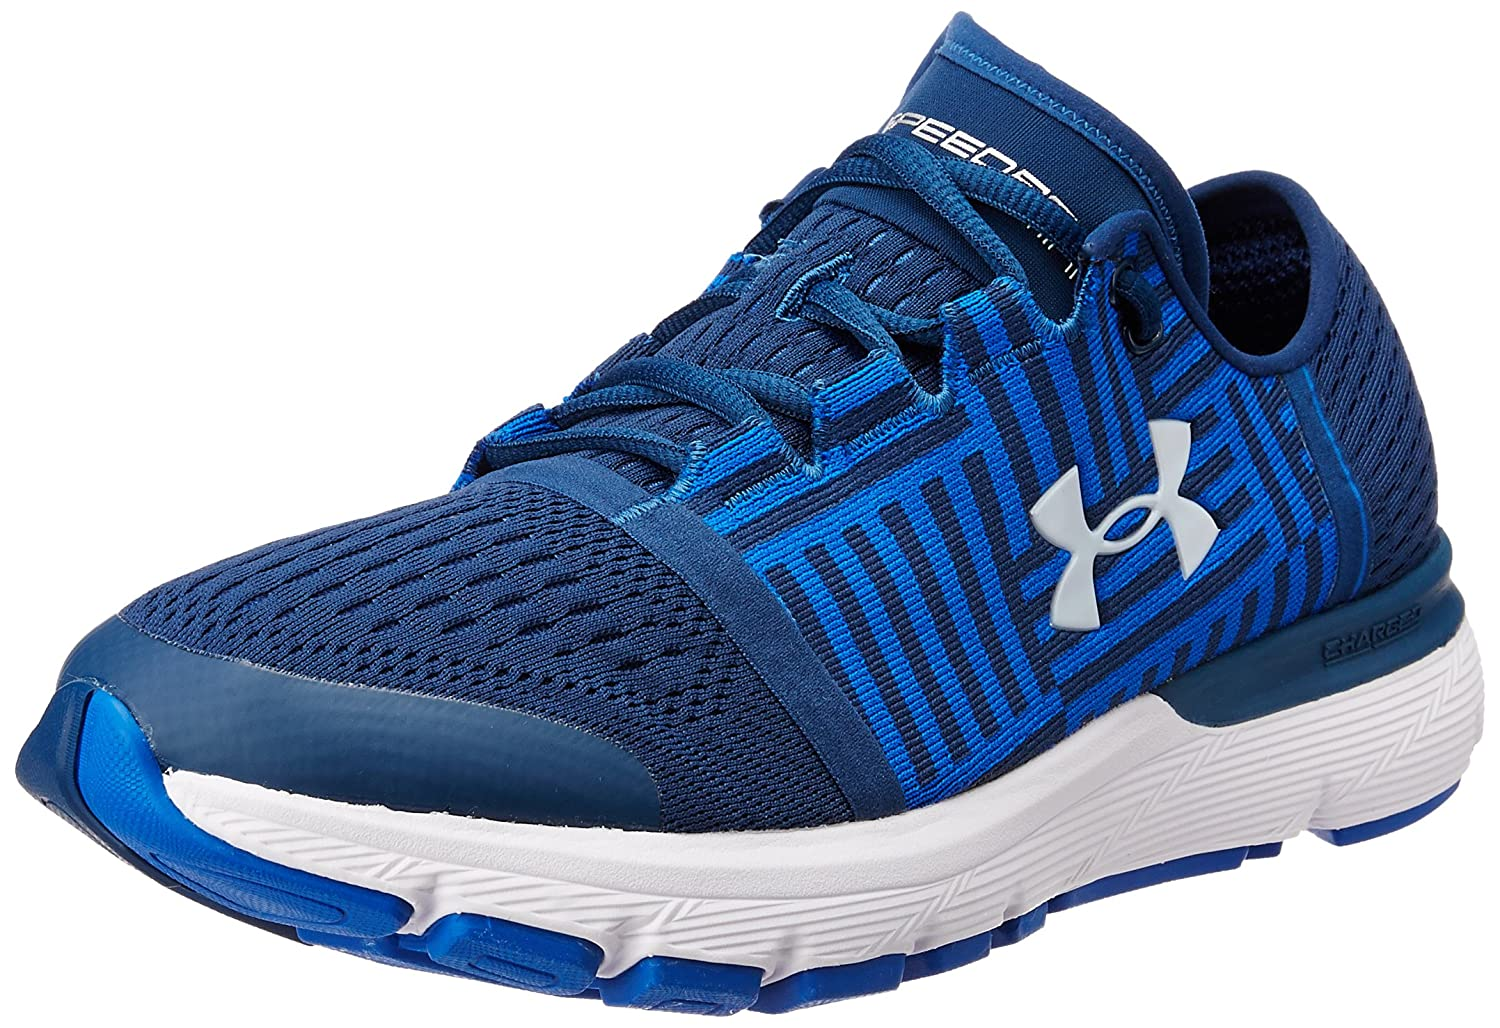 Under Armour Men s Speedform Gemini 3 Running Shoes  Buy Online at Low  Prices in India - Amazon.in fbf6719fdf